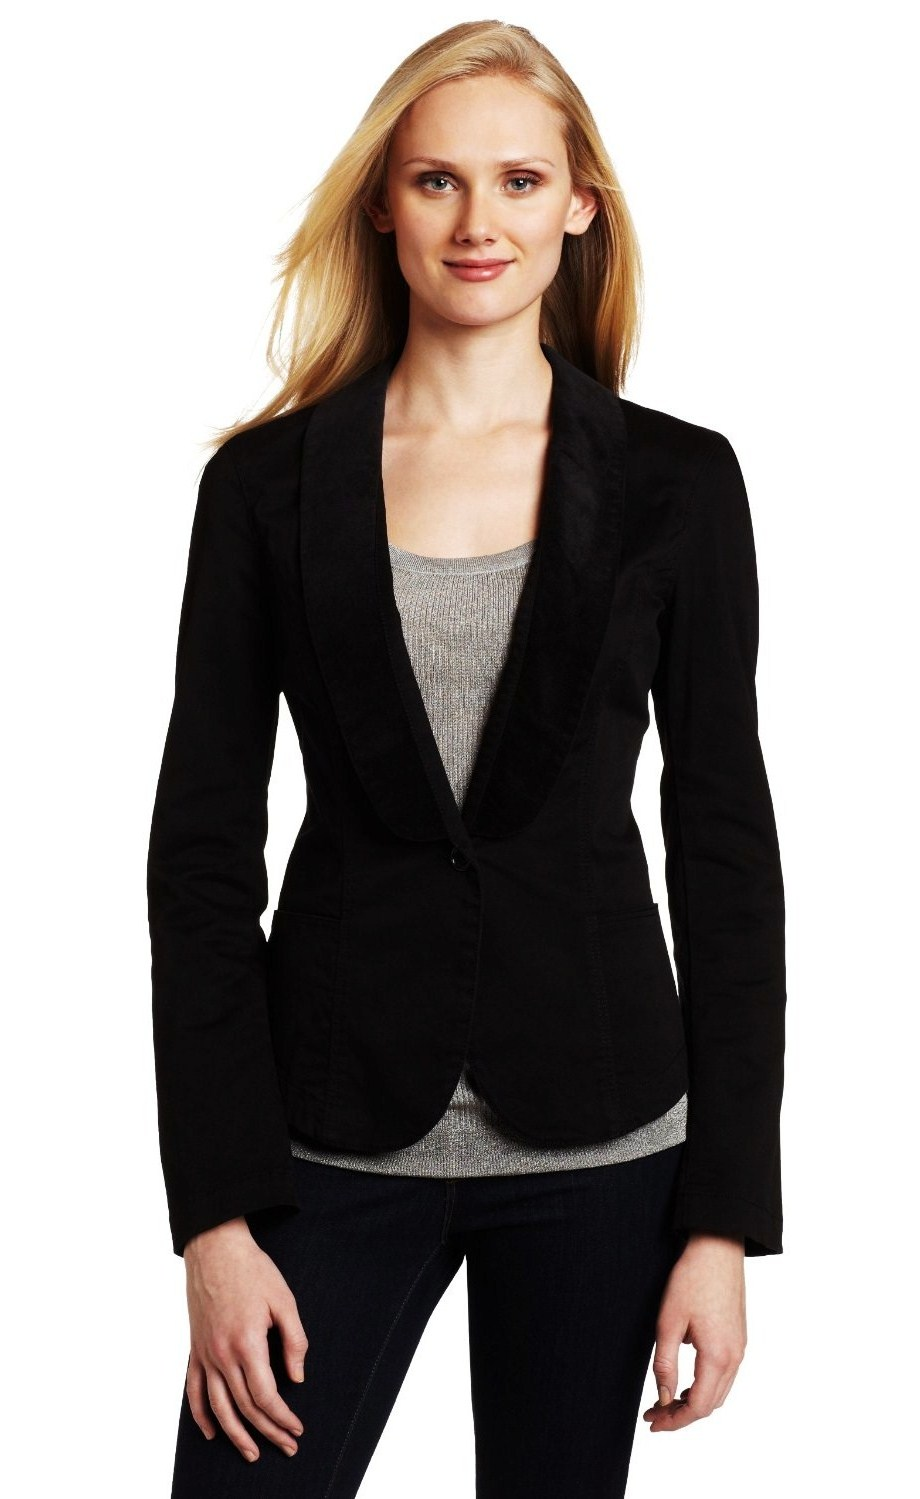 25 Ways to Style a Plain Black Blazer